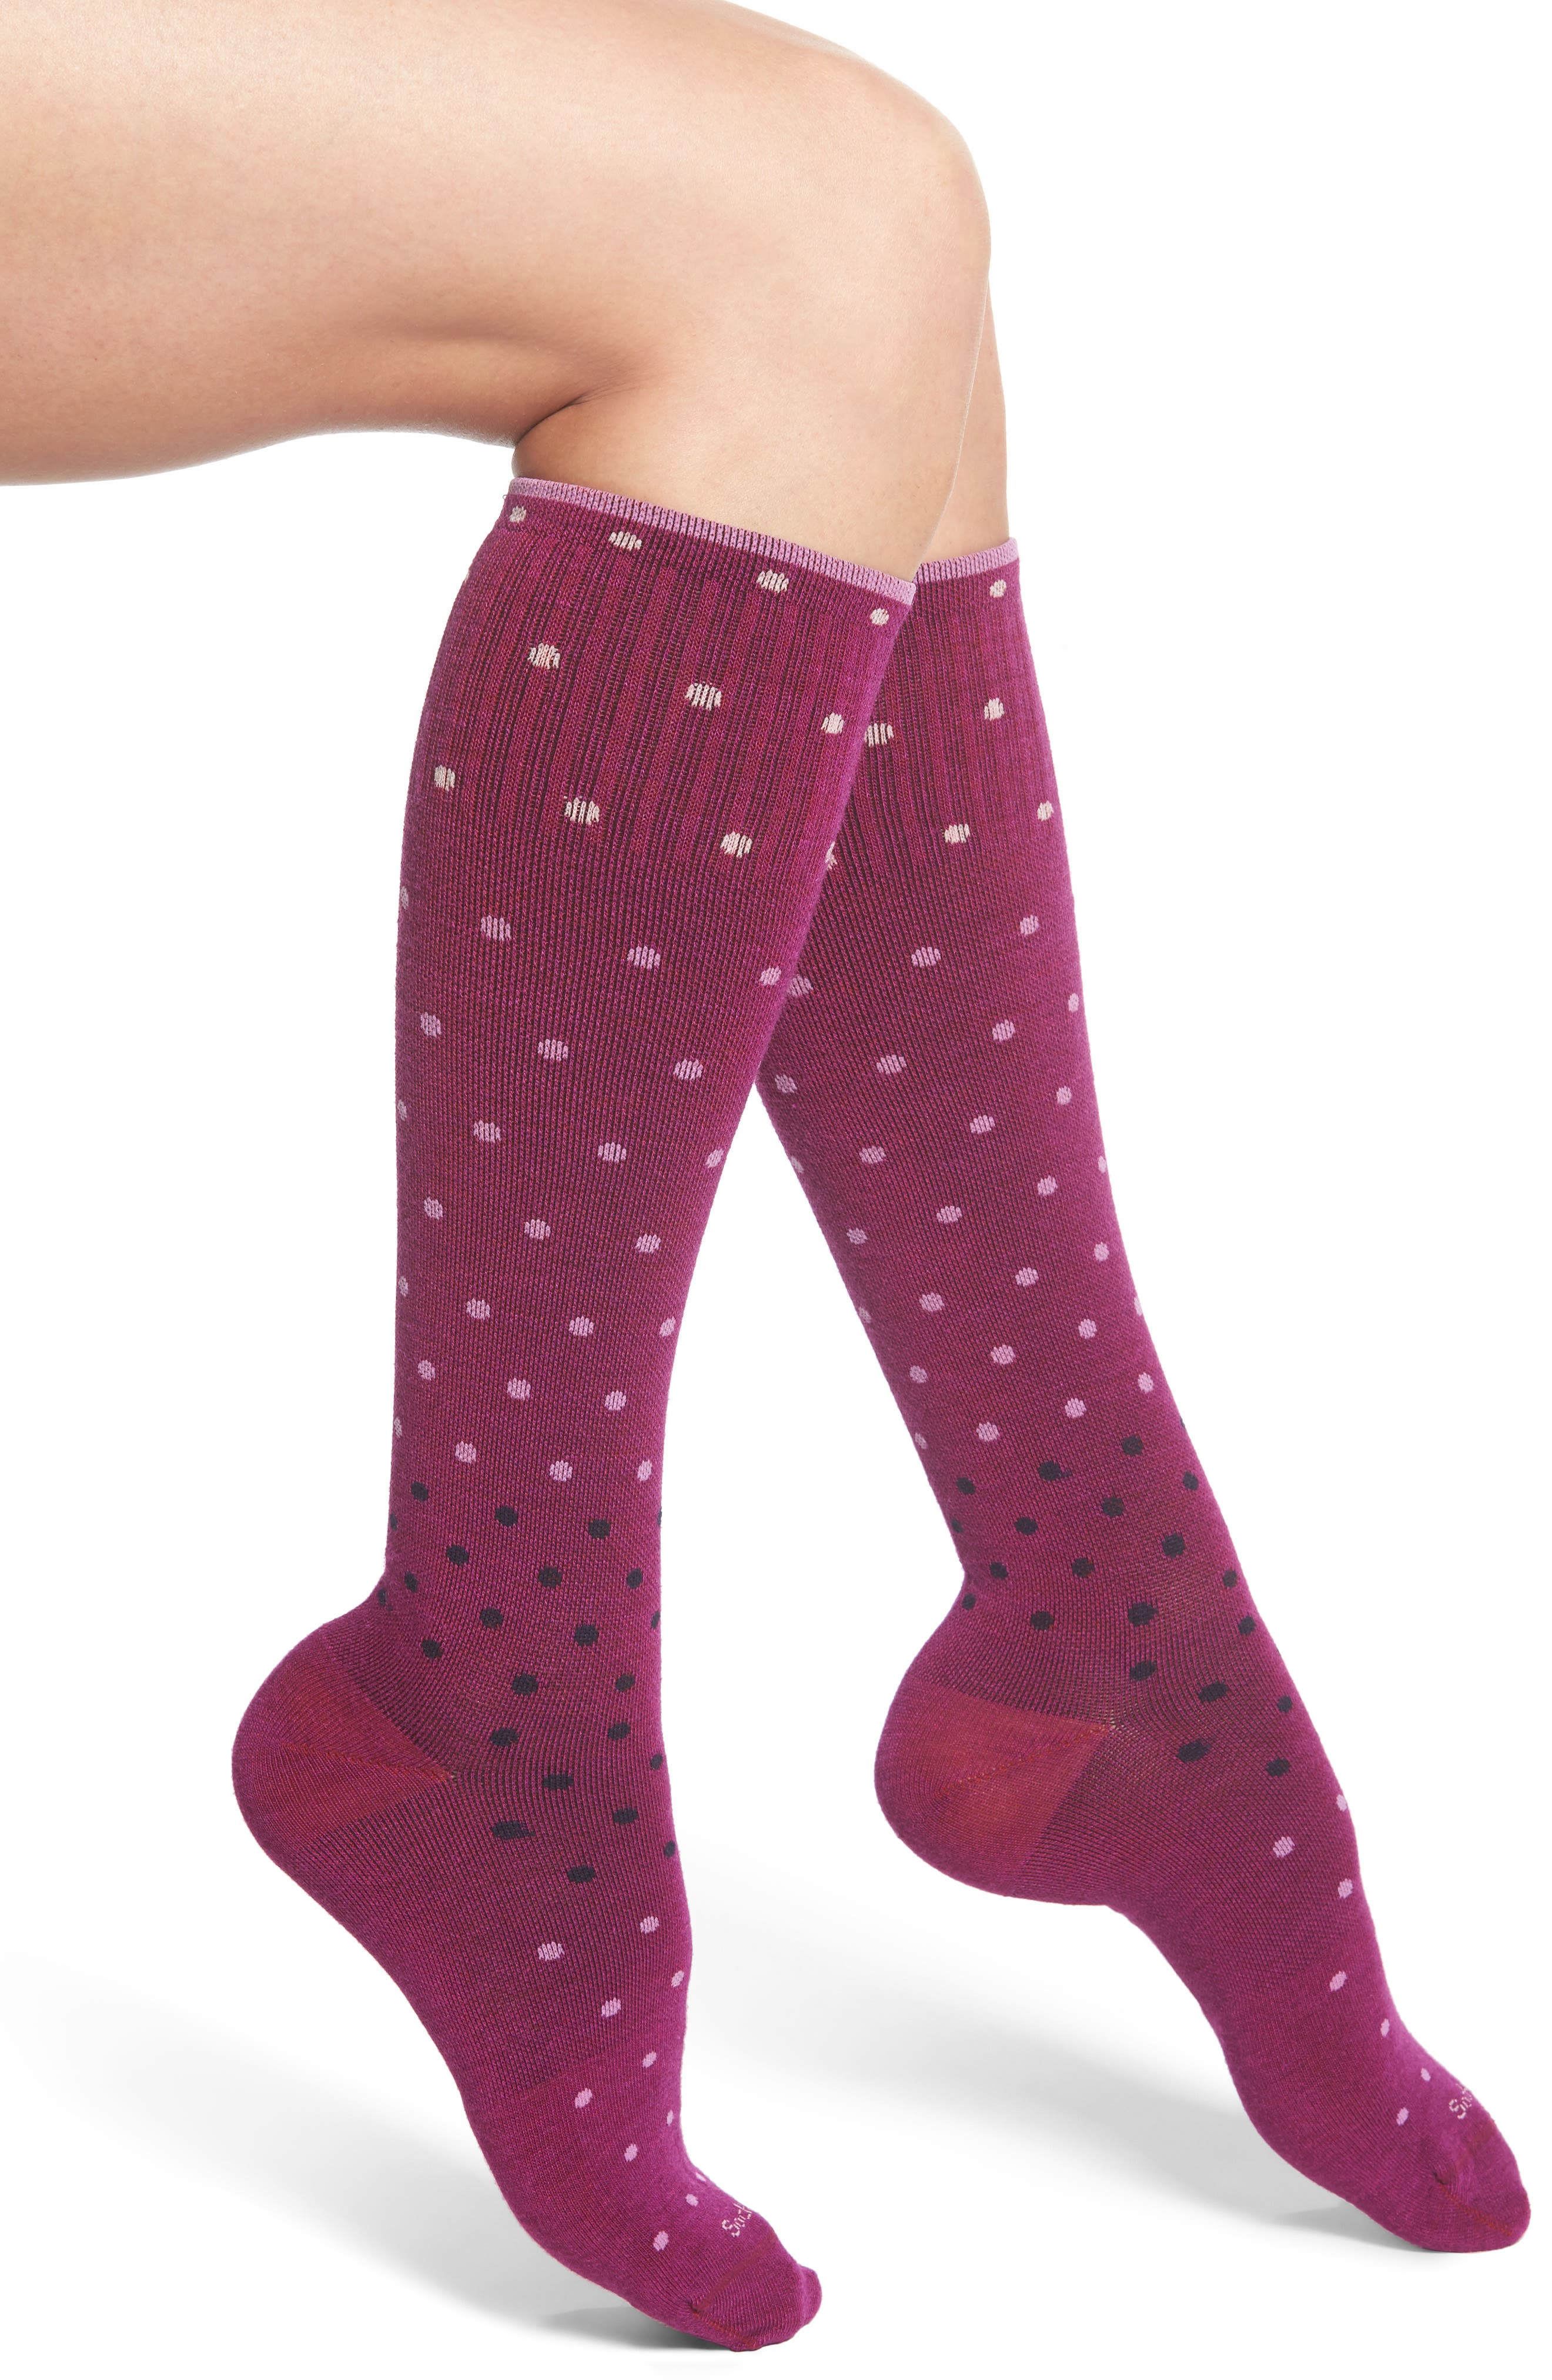 'Goodhew - On the Spot' Compression Knee Socks,                             Main thumbnail 1, color,                             510